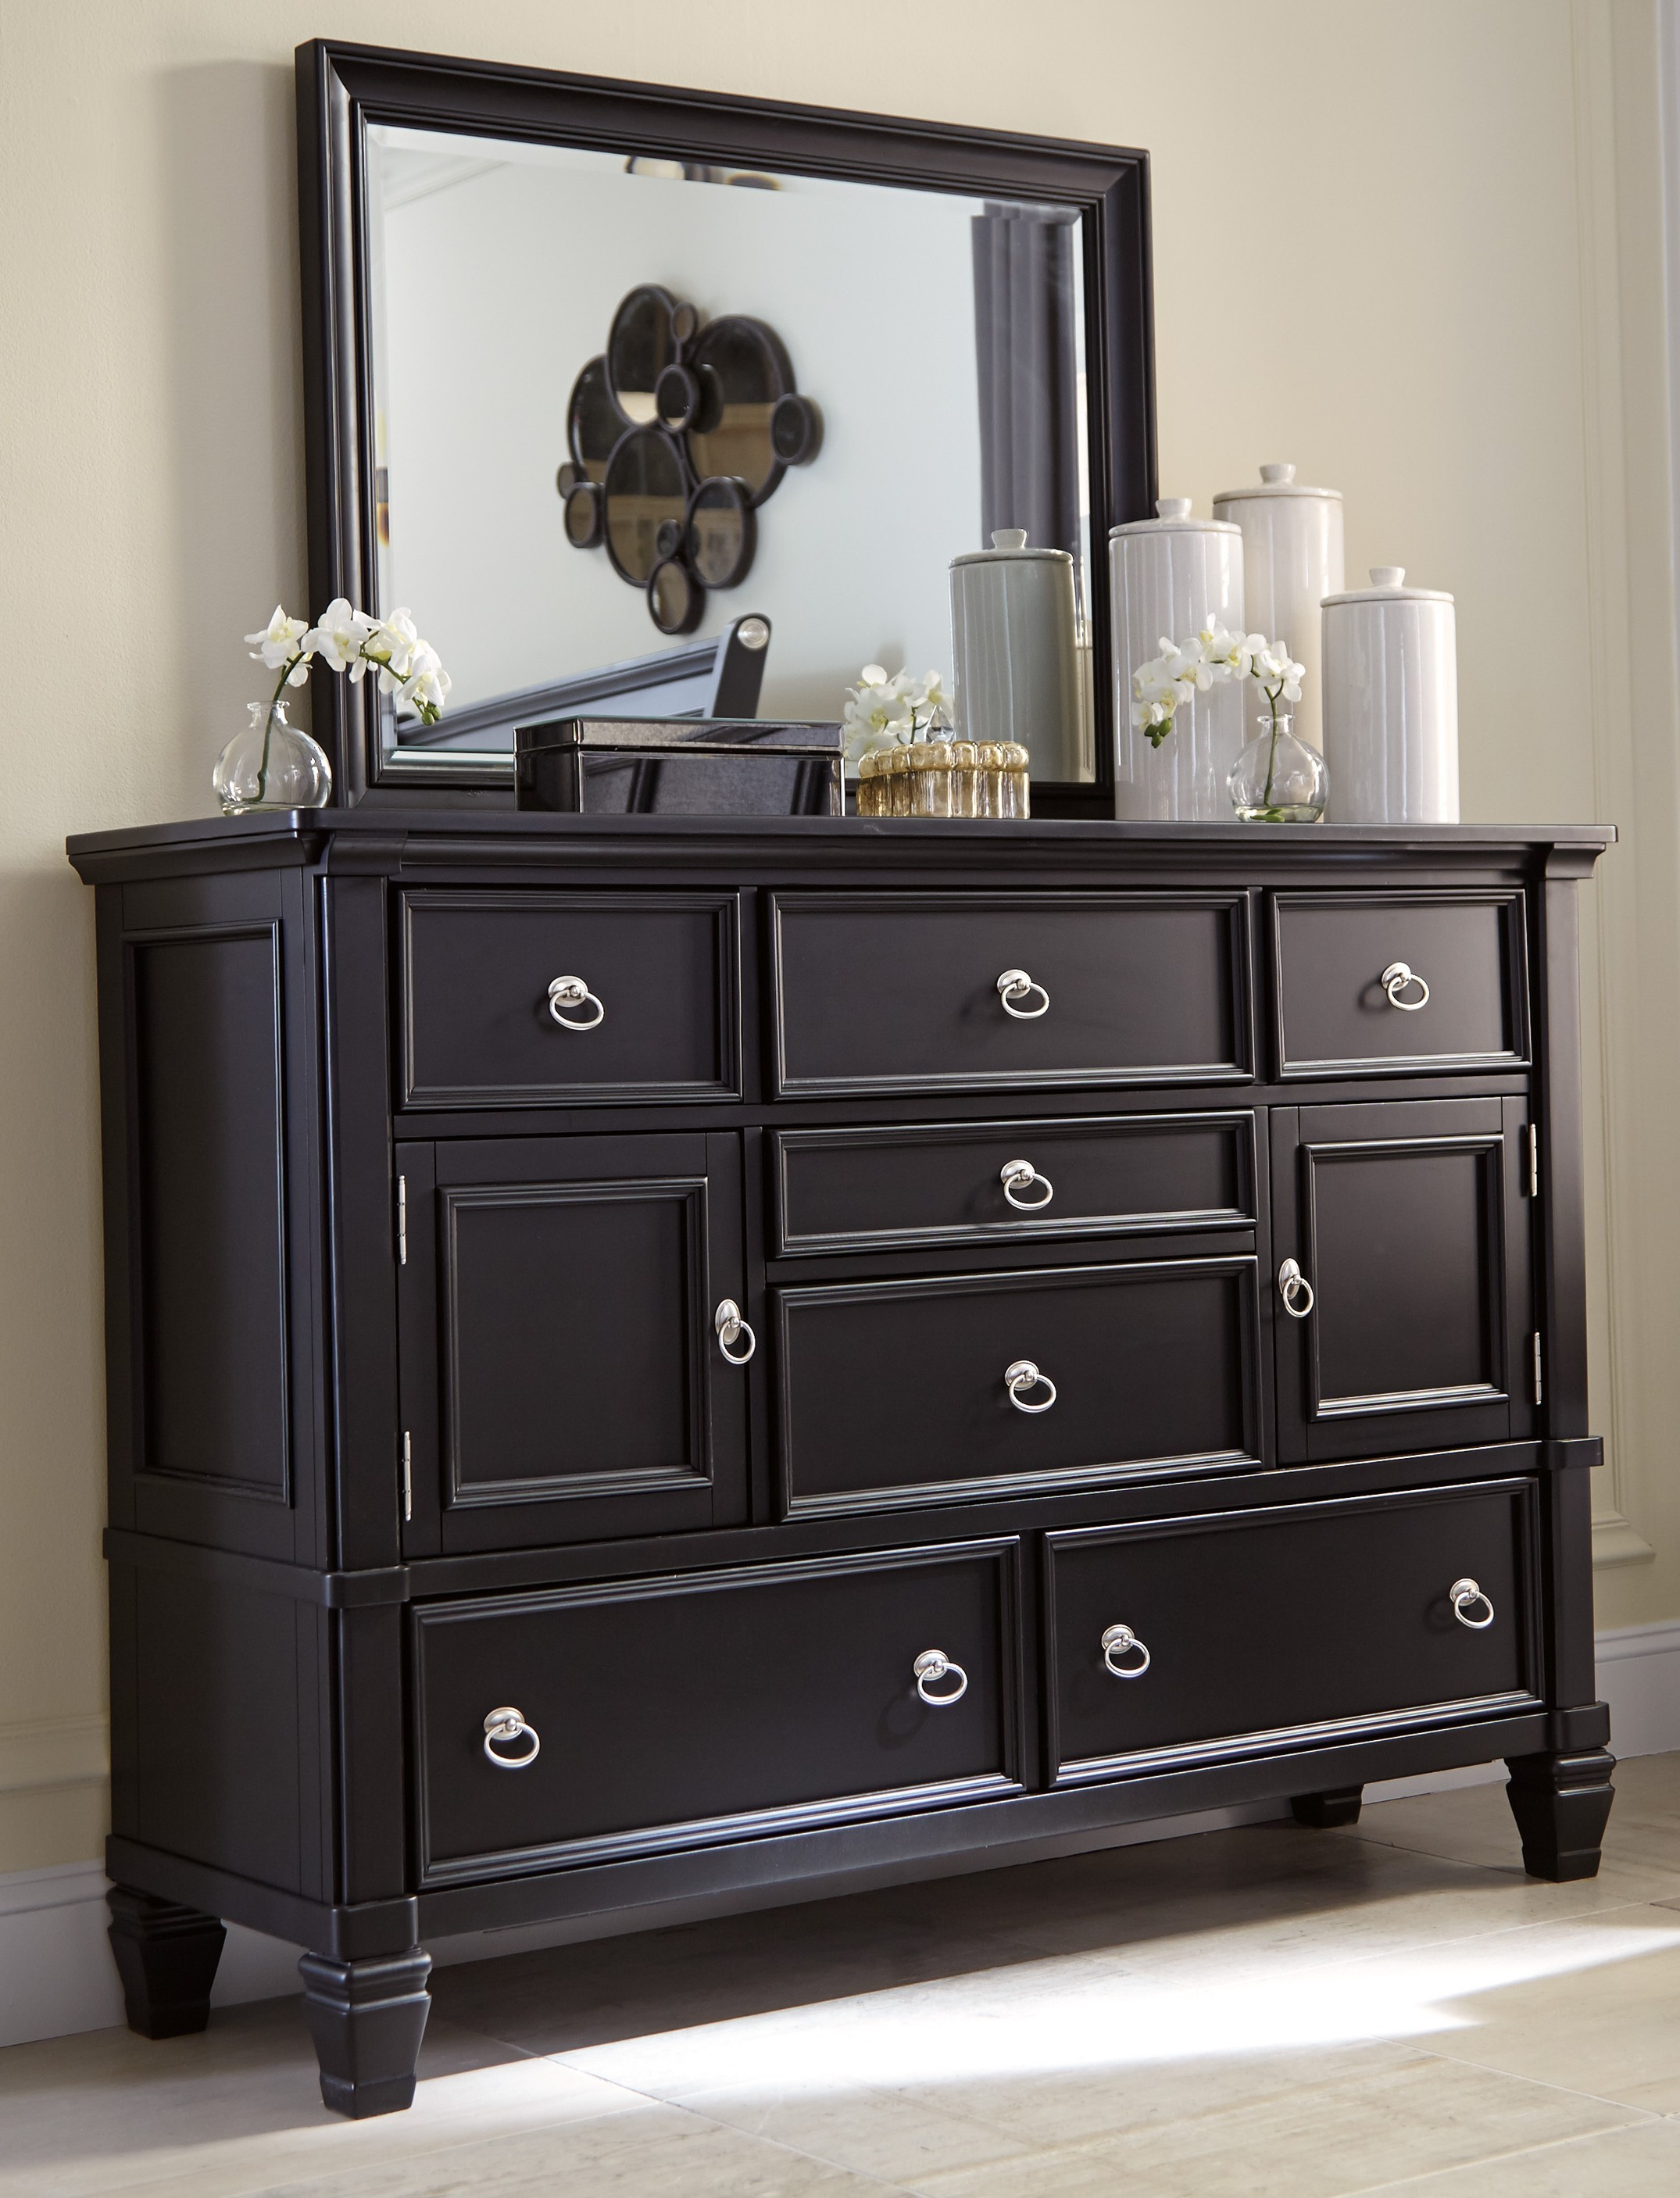 furniture upgrade your home with pretty mirrored dresser ashley target accent table mirror ikea desk combo multi colored chest drawers narrow dressers nightstand short side pier